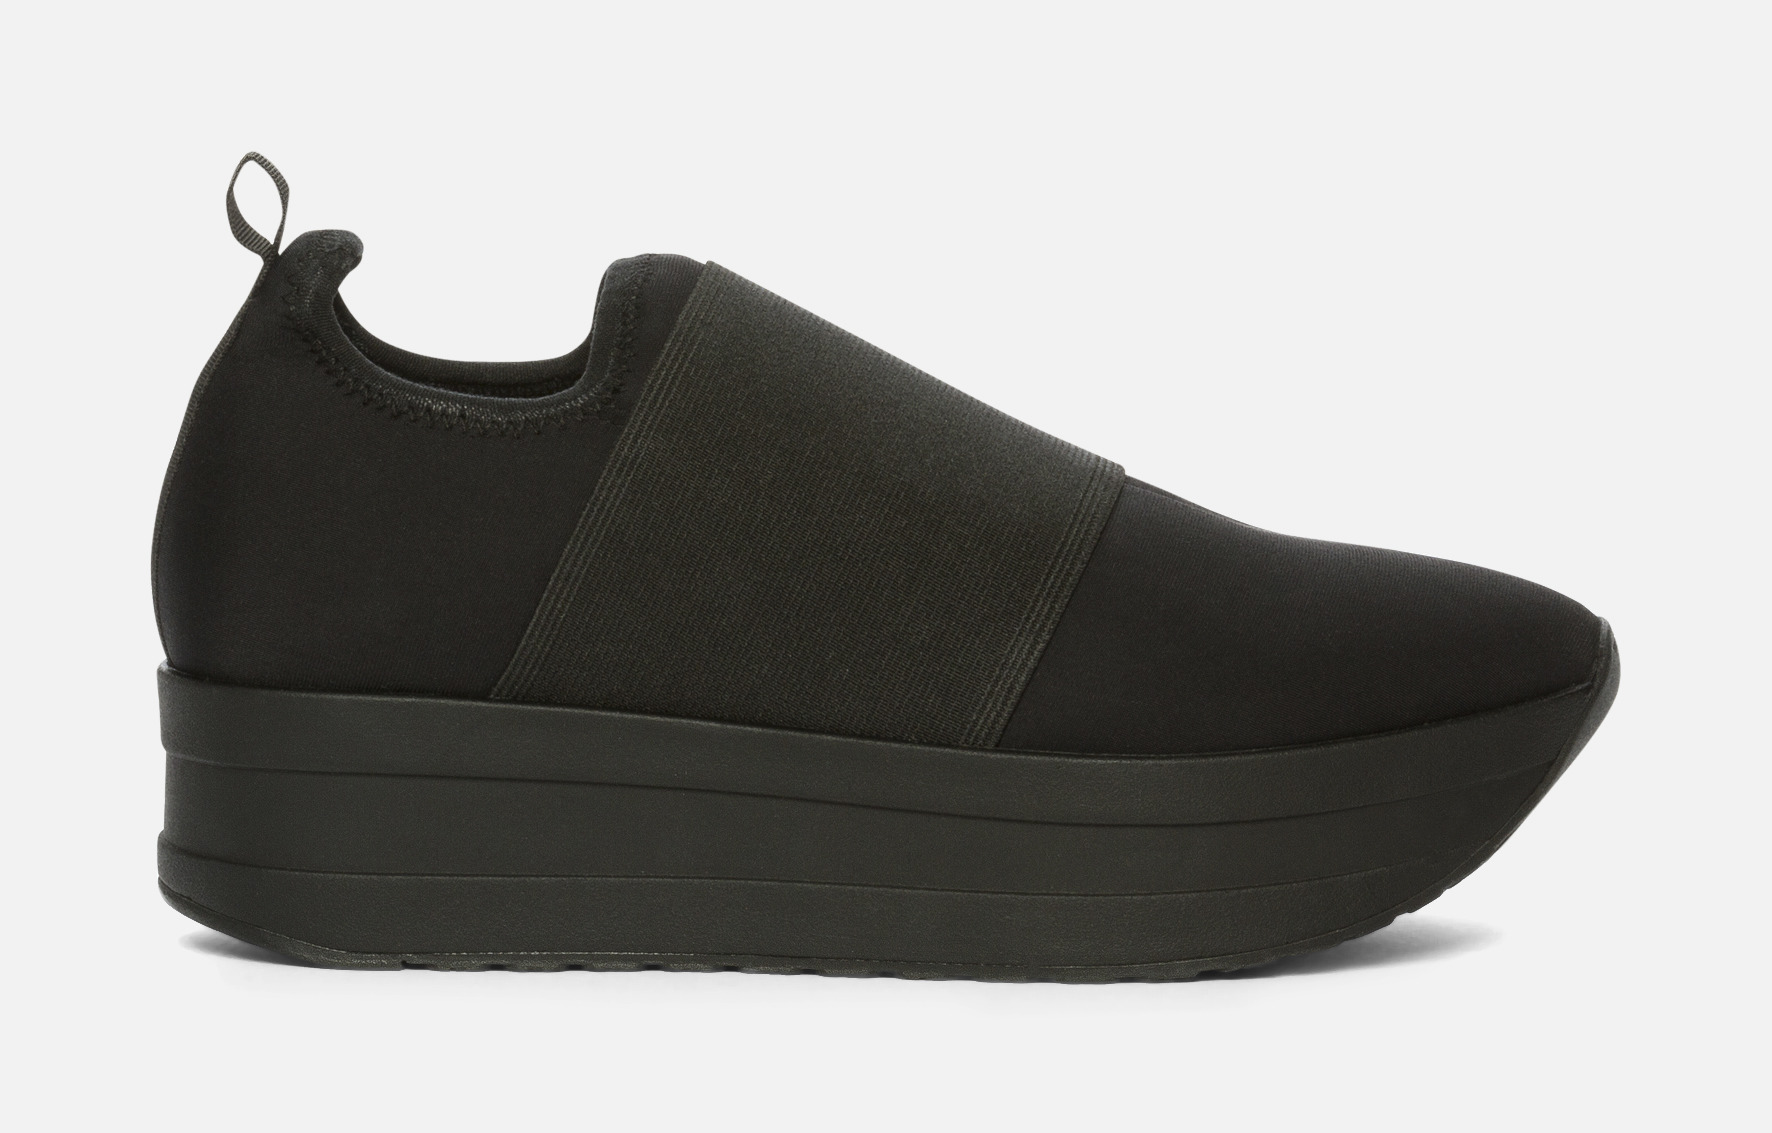 size 40 f070d 96e47 Nilson Vagabond NO Shoes online FEETFIRST fra Sneakers a1f7q